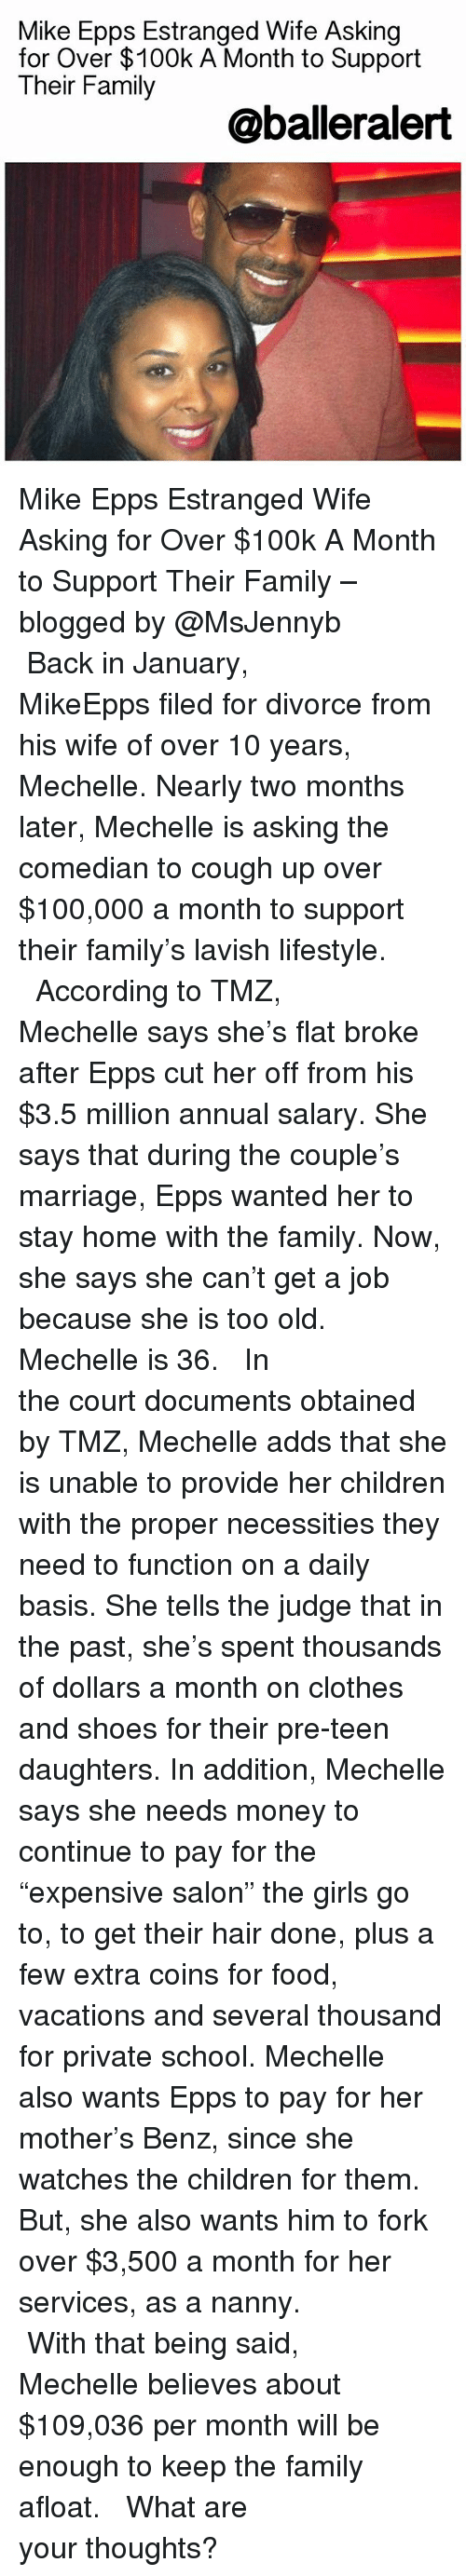 """the comedian: Mike Epps Estranged Wife Asking  for Over $100k A Month to Support  Their Family  @baller alert Mike Epps Estranged Wife Asking for Over $100k A Month to Support Their Family – blogged by @MsJennyb ⠀⠀⠀⠀⠀⠀⠀⠀⠀ ⠀⠀⠀⠀⠀⠀⠀⠀⠀ Back in January, MikeEpps filed for divorce from his wife of over 10 years, Mechelle. Nearly two months later, Mechelle is asking the comedian to cough up over $100,000 a month to support their family's lavish lifestyle. ⠀⠀⠀⠀⠀⠀⠀⠀⠀ ⠀⠀⠀⠀⠀⠀⠀⠀⠀ According to TMZ, Mechelle says she's flat broke after Epps cut her off from his $3.5 million annual salary. She says that during the couple's marriage, Epps wanted her to stay home with the family. Now, she says she can't get a job because she is too old. Mechelle is 36. ⠀⠀⠀⠀⠀⠀⠀⠀⠀ ⠀⠀⠀⠀⠀⠀⠀⠀⠀ In the court documents obtained by TMZ, Mechelle adds that she is unable to provide her children with the proper necessities they need to function on a daily basis. She tells the judge that in the past, she's spent thousands of dollars a month on clothes and shoes for their pre-teen daughters. In addition, Mechelle says she needs money to continue to pay for the """"expensive salon"""" the girls go to, to get their hair done, plus a few extra coins for food, vacations and several thousand for private school. Mechelle also wants Epps to pay for her mother's Benz, since she watches the children for them. But, she also wants him to fork over $3,500 a month for her services, as a nanny. ⠀⠀⠀⠀⠀⠀⠀⠀⠀ ⠀⠀⠀⠀⠀⠀⠀⠀⠀ With that being said, Mechelle believes about $109,036 per month will be enough to keep the family afloat. ⠀⠀⠀⠀⠀⠀⠀⠀⠀ ⠀⠀⠀⠀⠀⠀⠀⠀⠀ What are your thoughts?"""